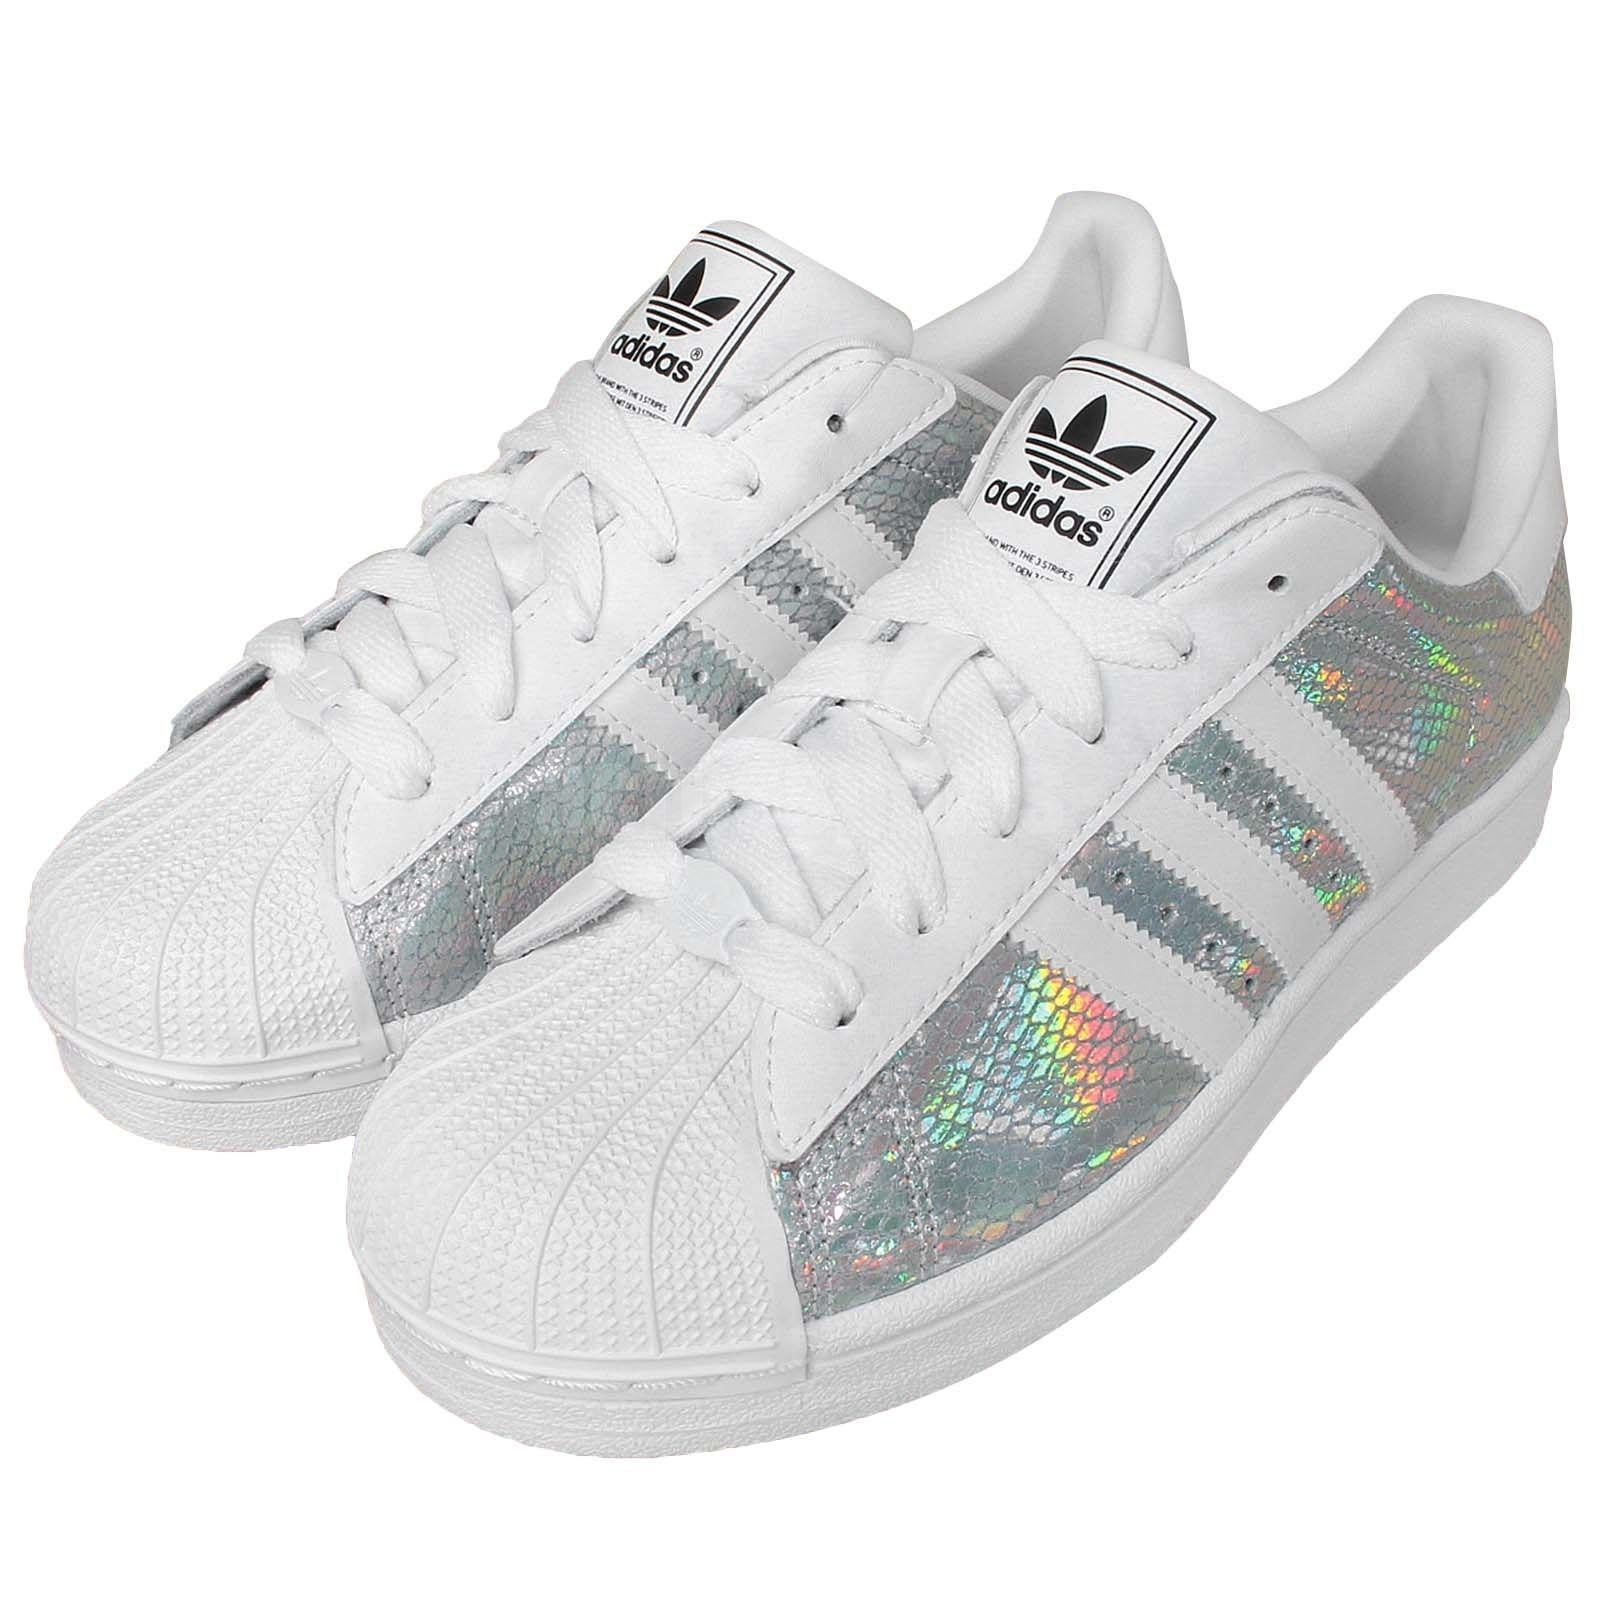 adidas Superstar Boost Spring 2017 Colorways